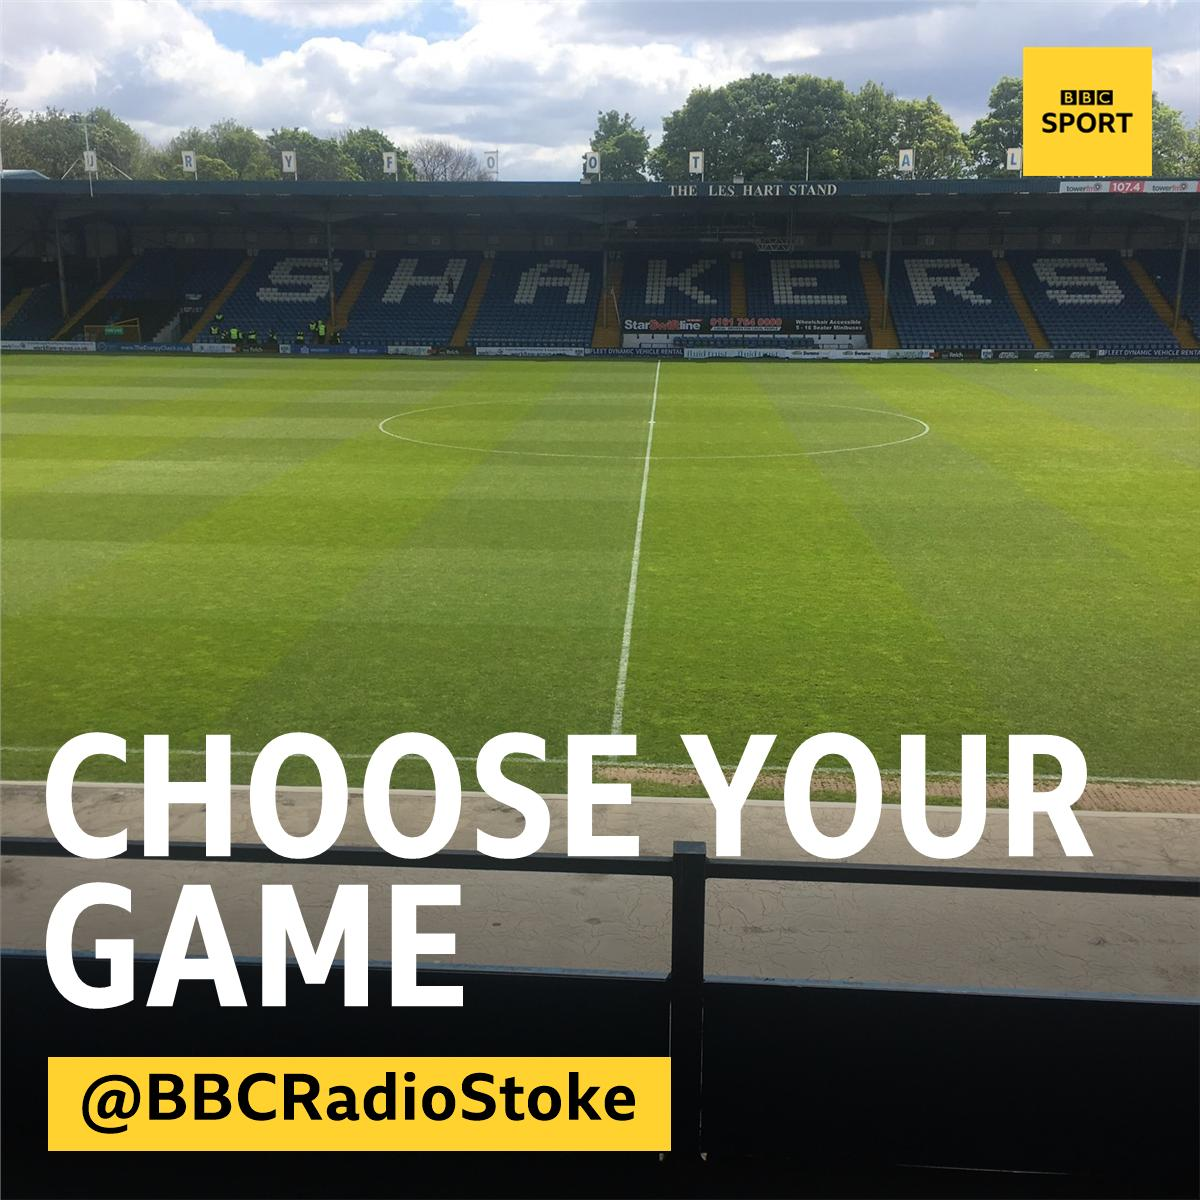 Its nearly time to split for our commentaries: ⚽️Bury vs #PVFC 🎙️@LeeBlakeman & Ray Williams 📻94.6FM & Freeview 726 ⚽️Grimsby vs #CreweAlex 🎙️@GMcGarrySport & @ThePeterMorse 📻 1503MW & DAB ⚽️Updates from @domjdietrich at Radcliffe vs Leek Town on 94.6FM & Freeview 726